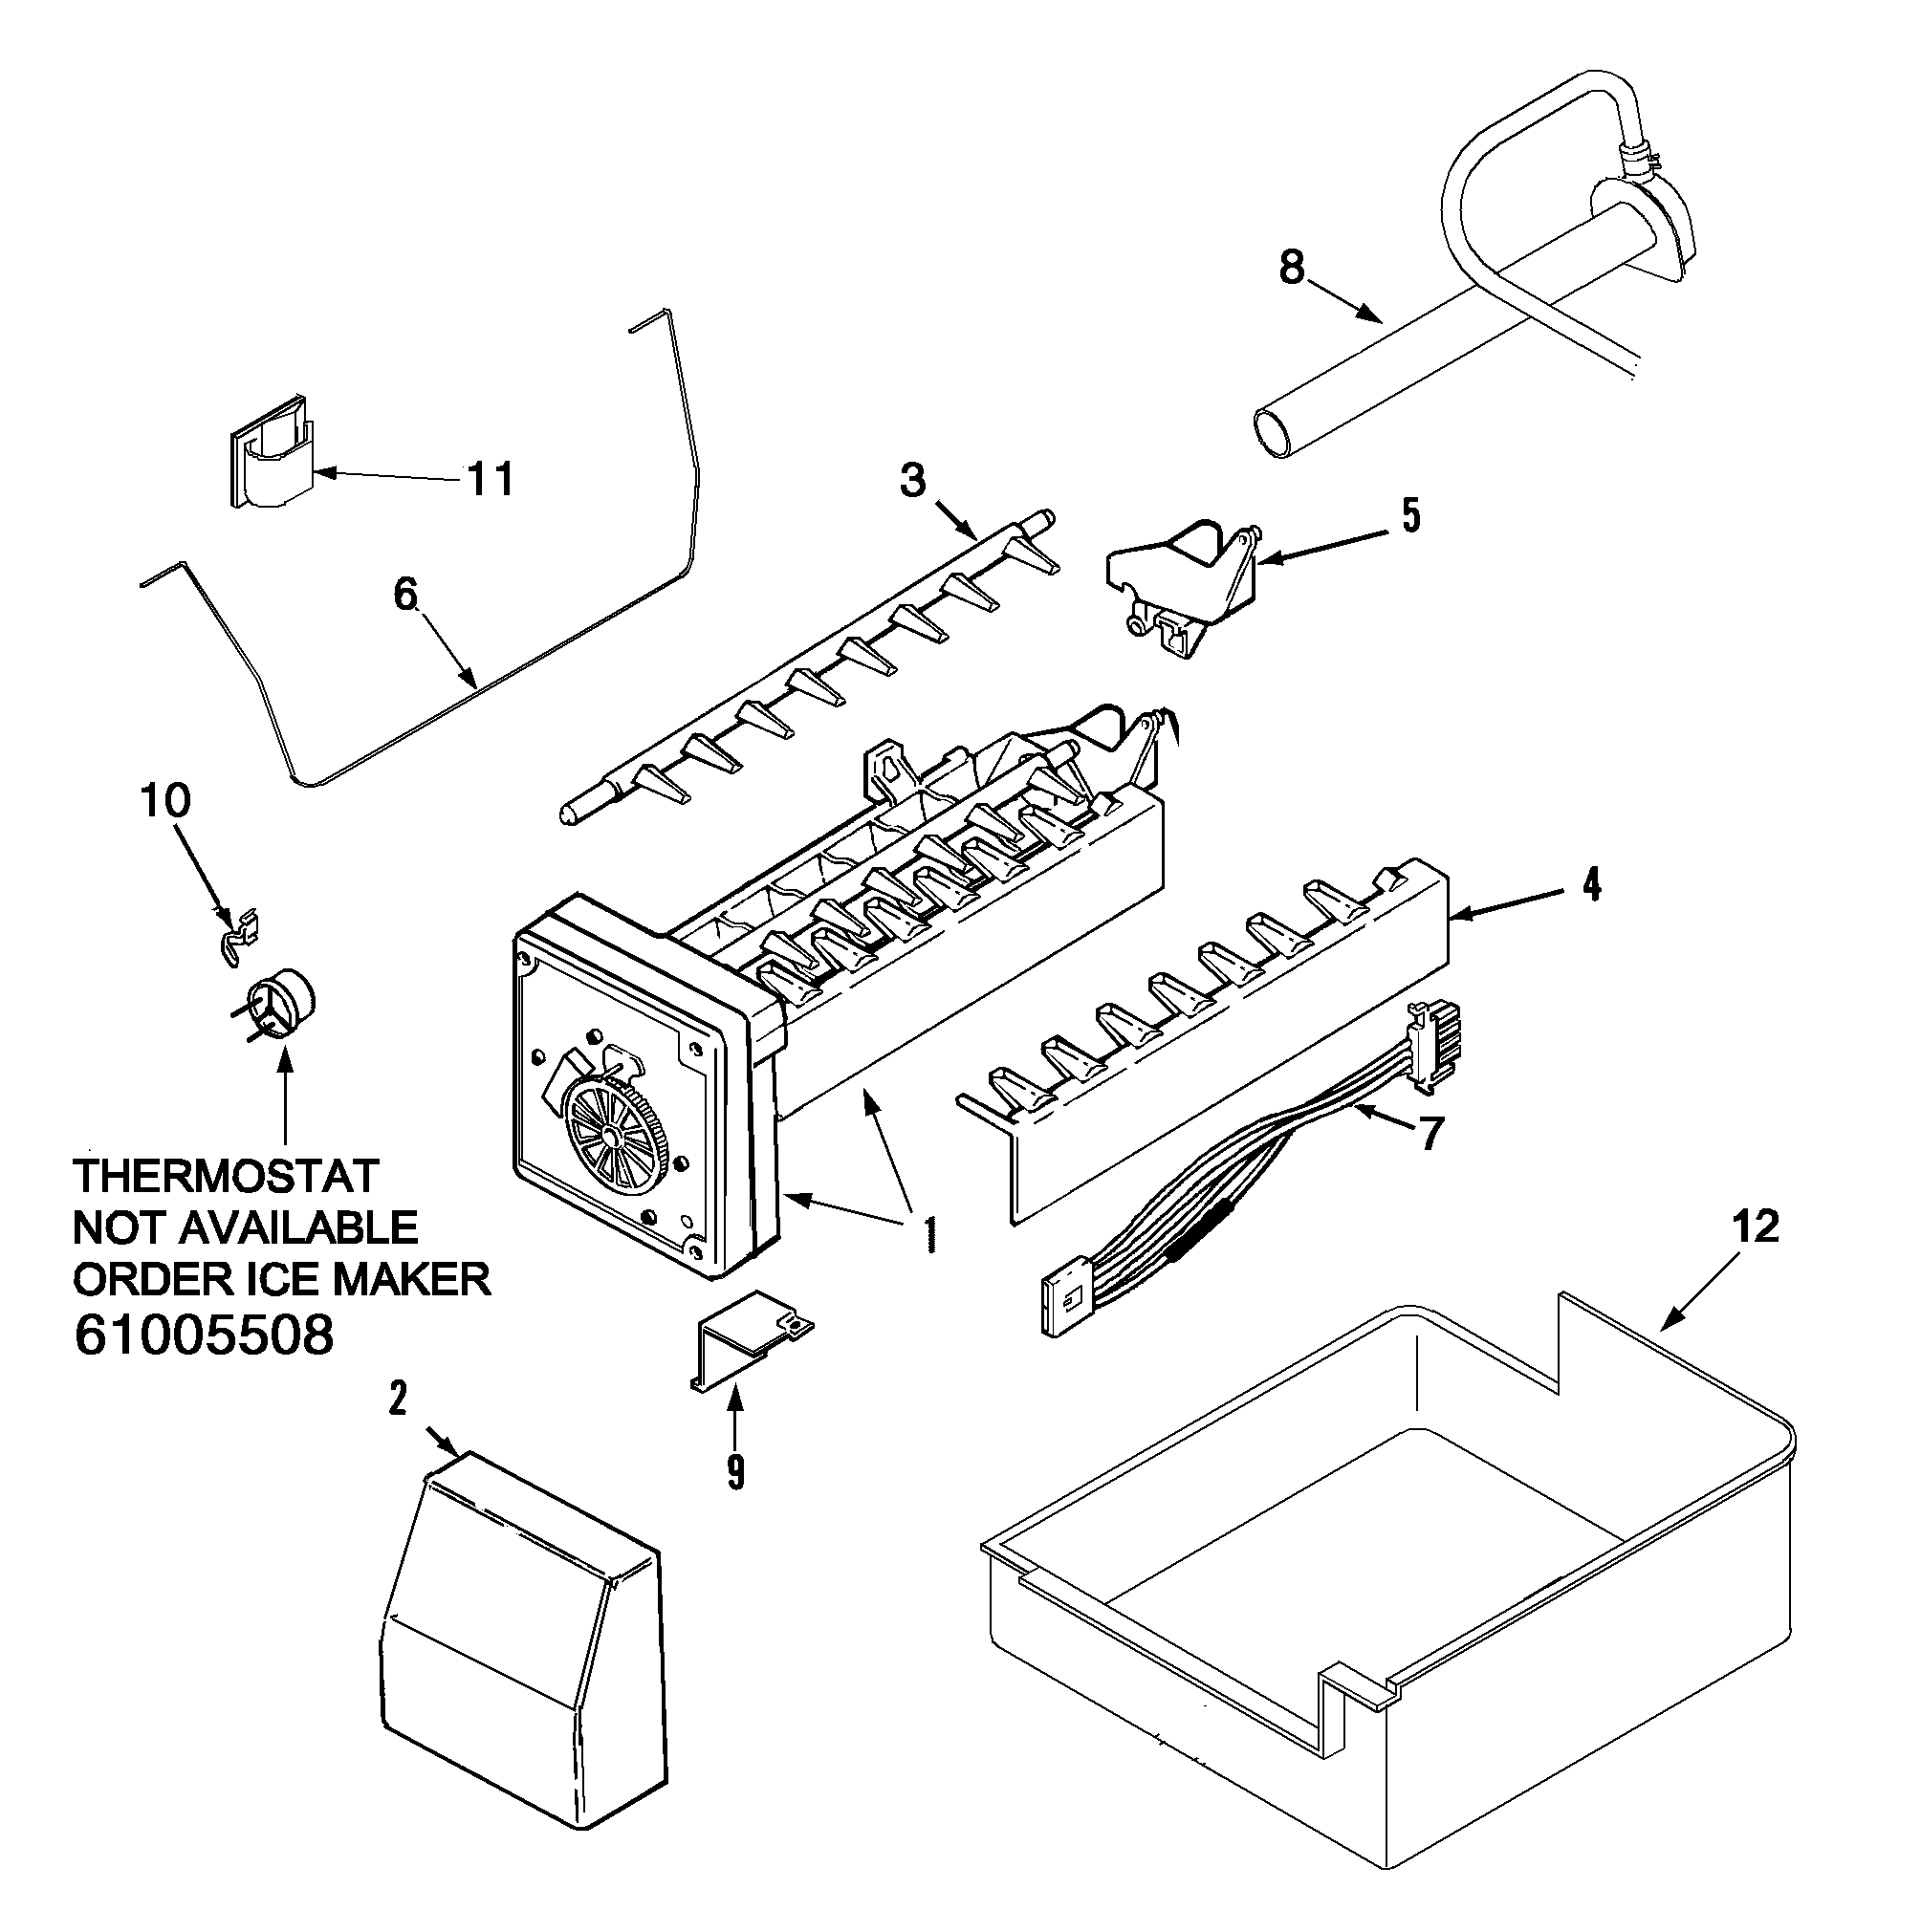 ice maker dispenser diagram and parts list for electroluxice maker dispenser diagram and parts list for [ 2009 x 2021 Pixel ]